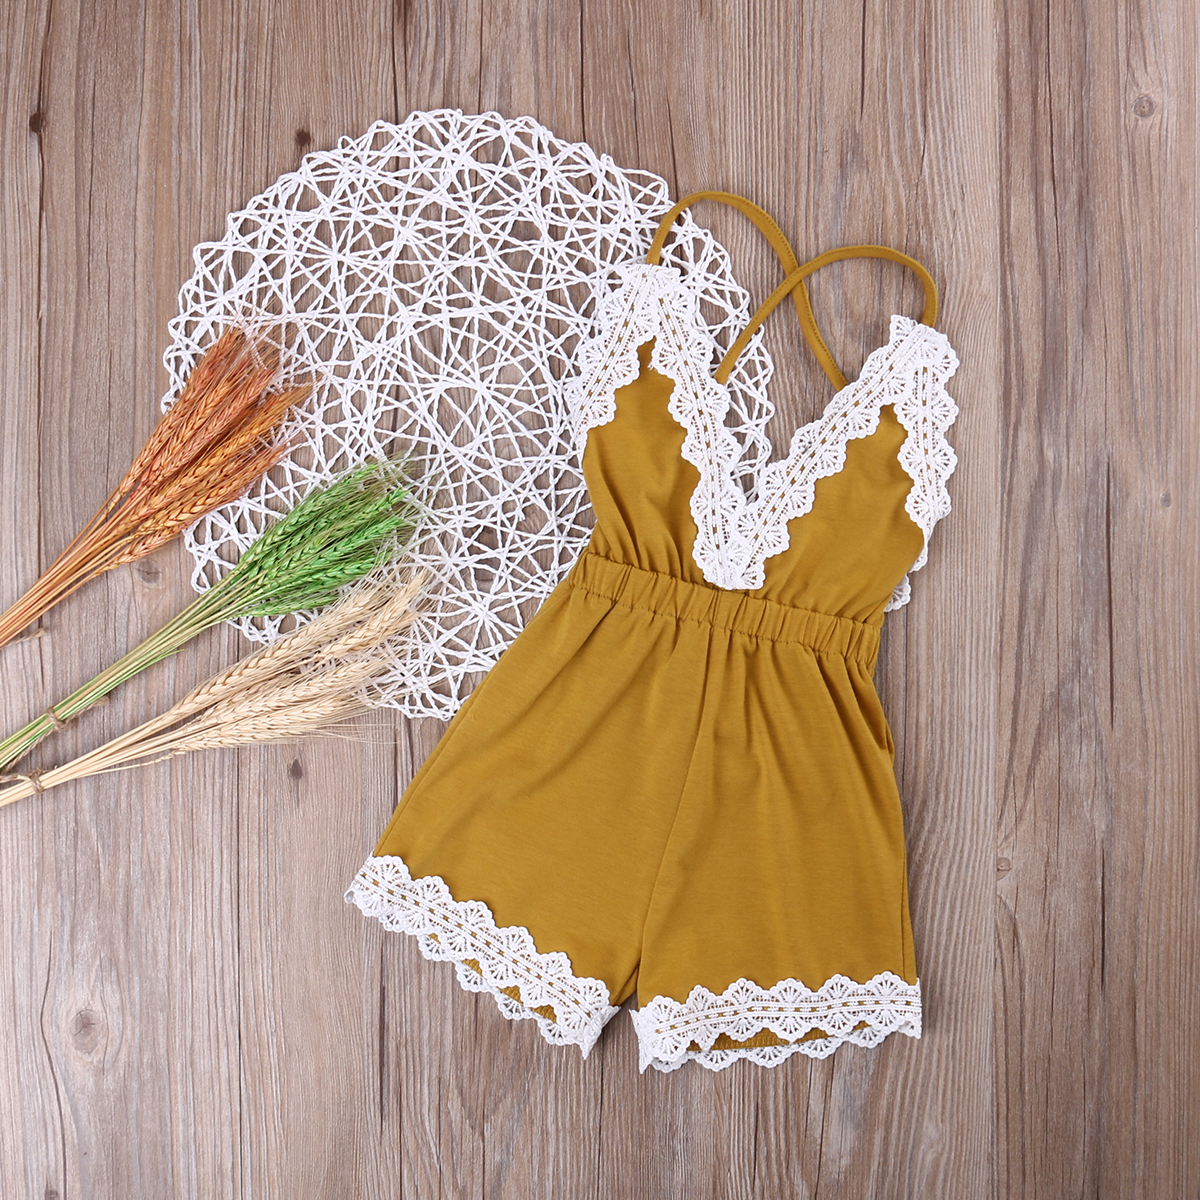 Adorable Newborn Baby Girls Clothing Romper Sleeveless Backless V Neck Jumpsuit Flower Outfits Clothes New недорго, оригинальная цена